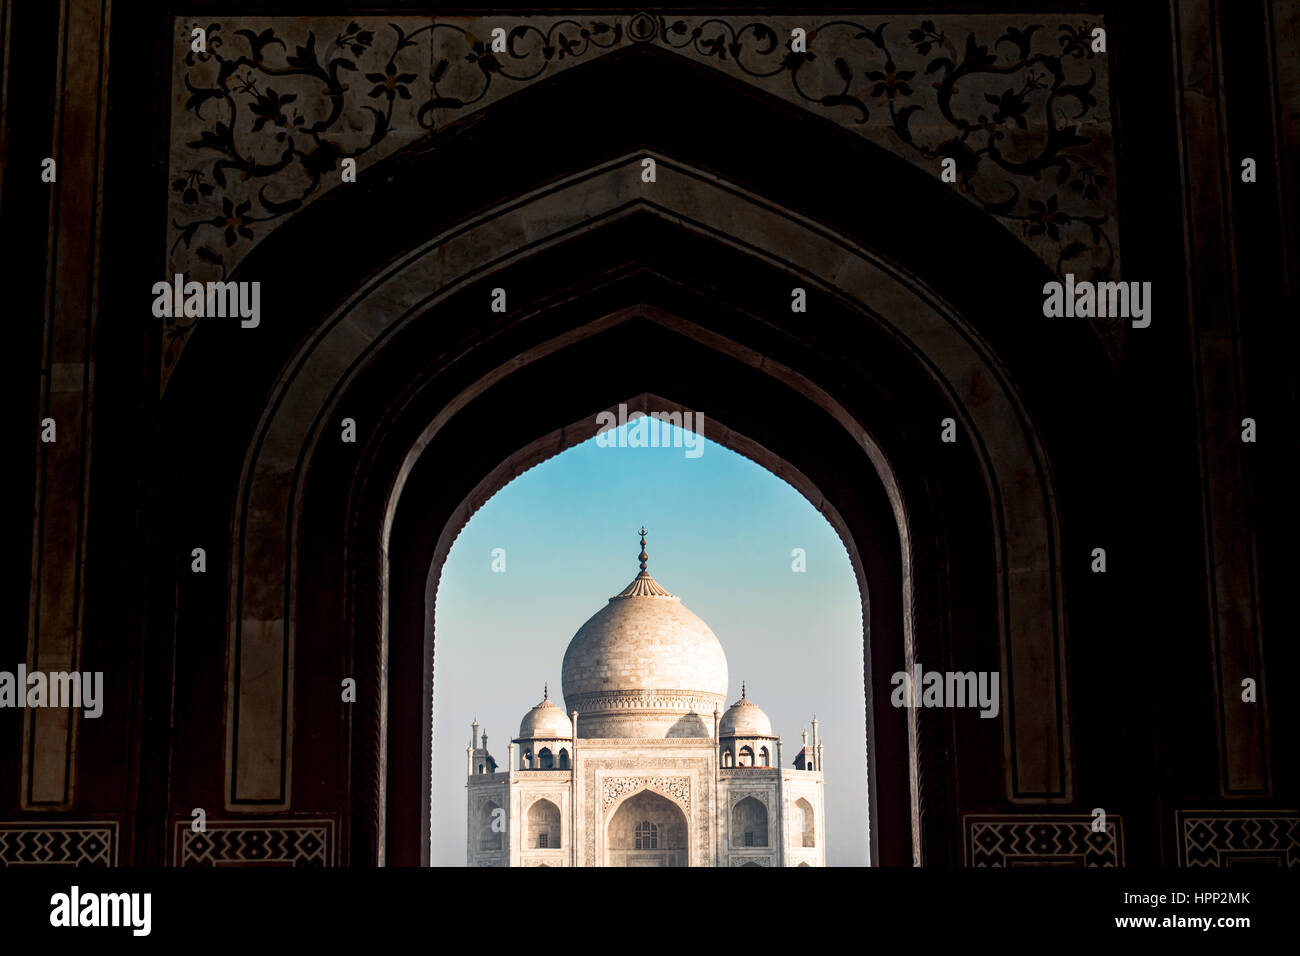 Far View of Taj Mahal Behind Gates Entrance Archs - Stock Image